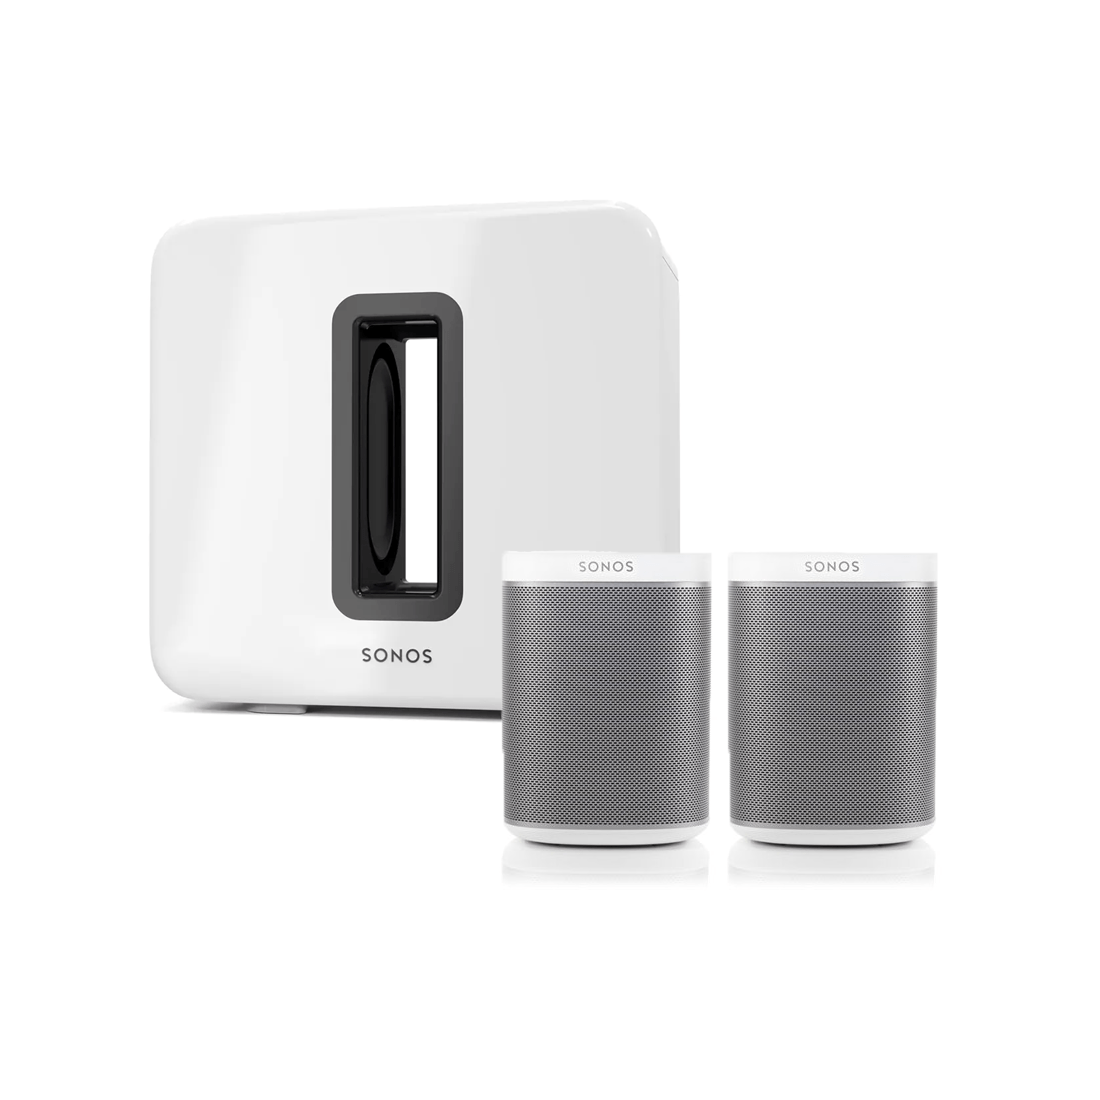 sonos one smart speaker x2 sonos sub amplified wireless subwoofer white bundle. Black Bedroom Furniture Sets. Home Design Ideas